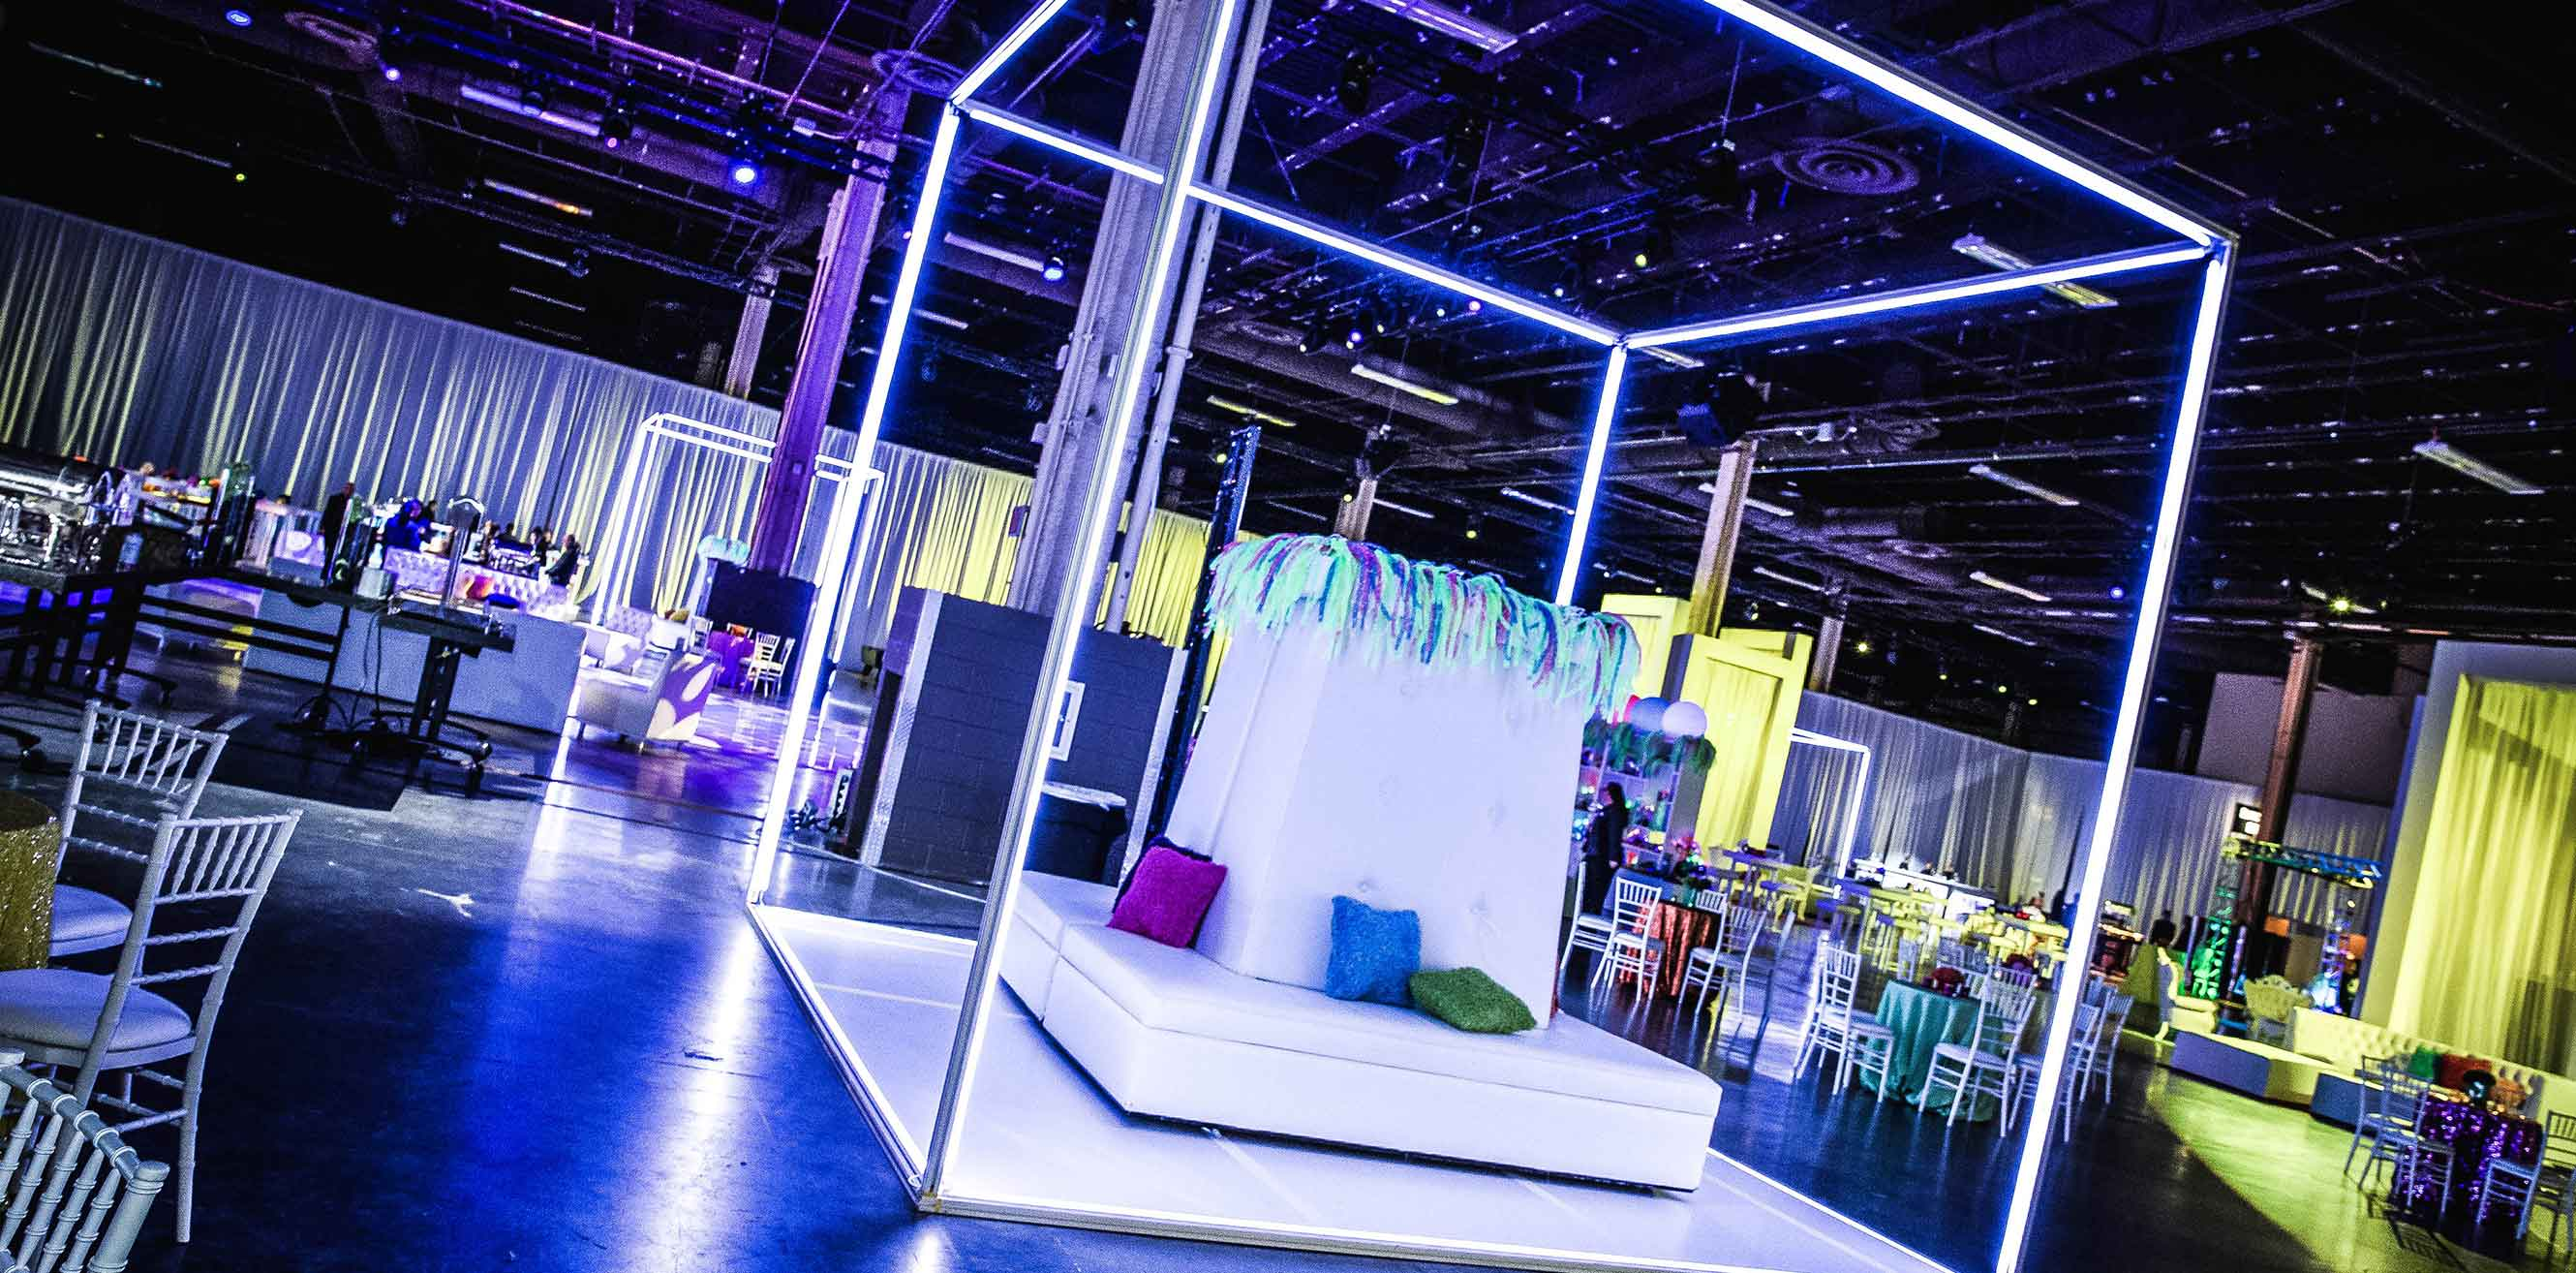 Neon box-like structure surrounding seating area in an event space